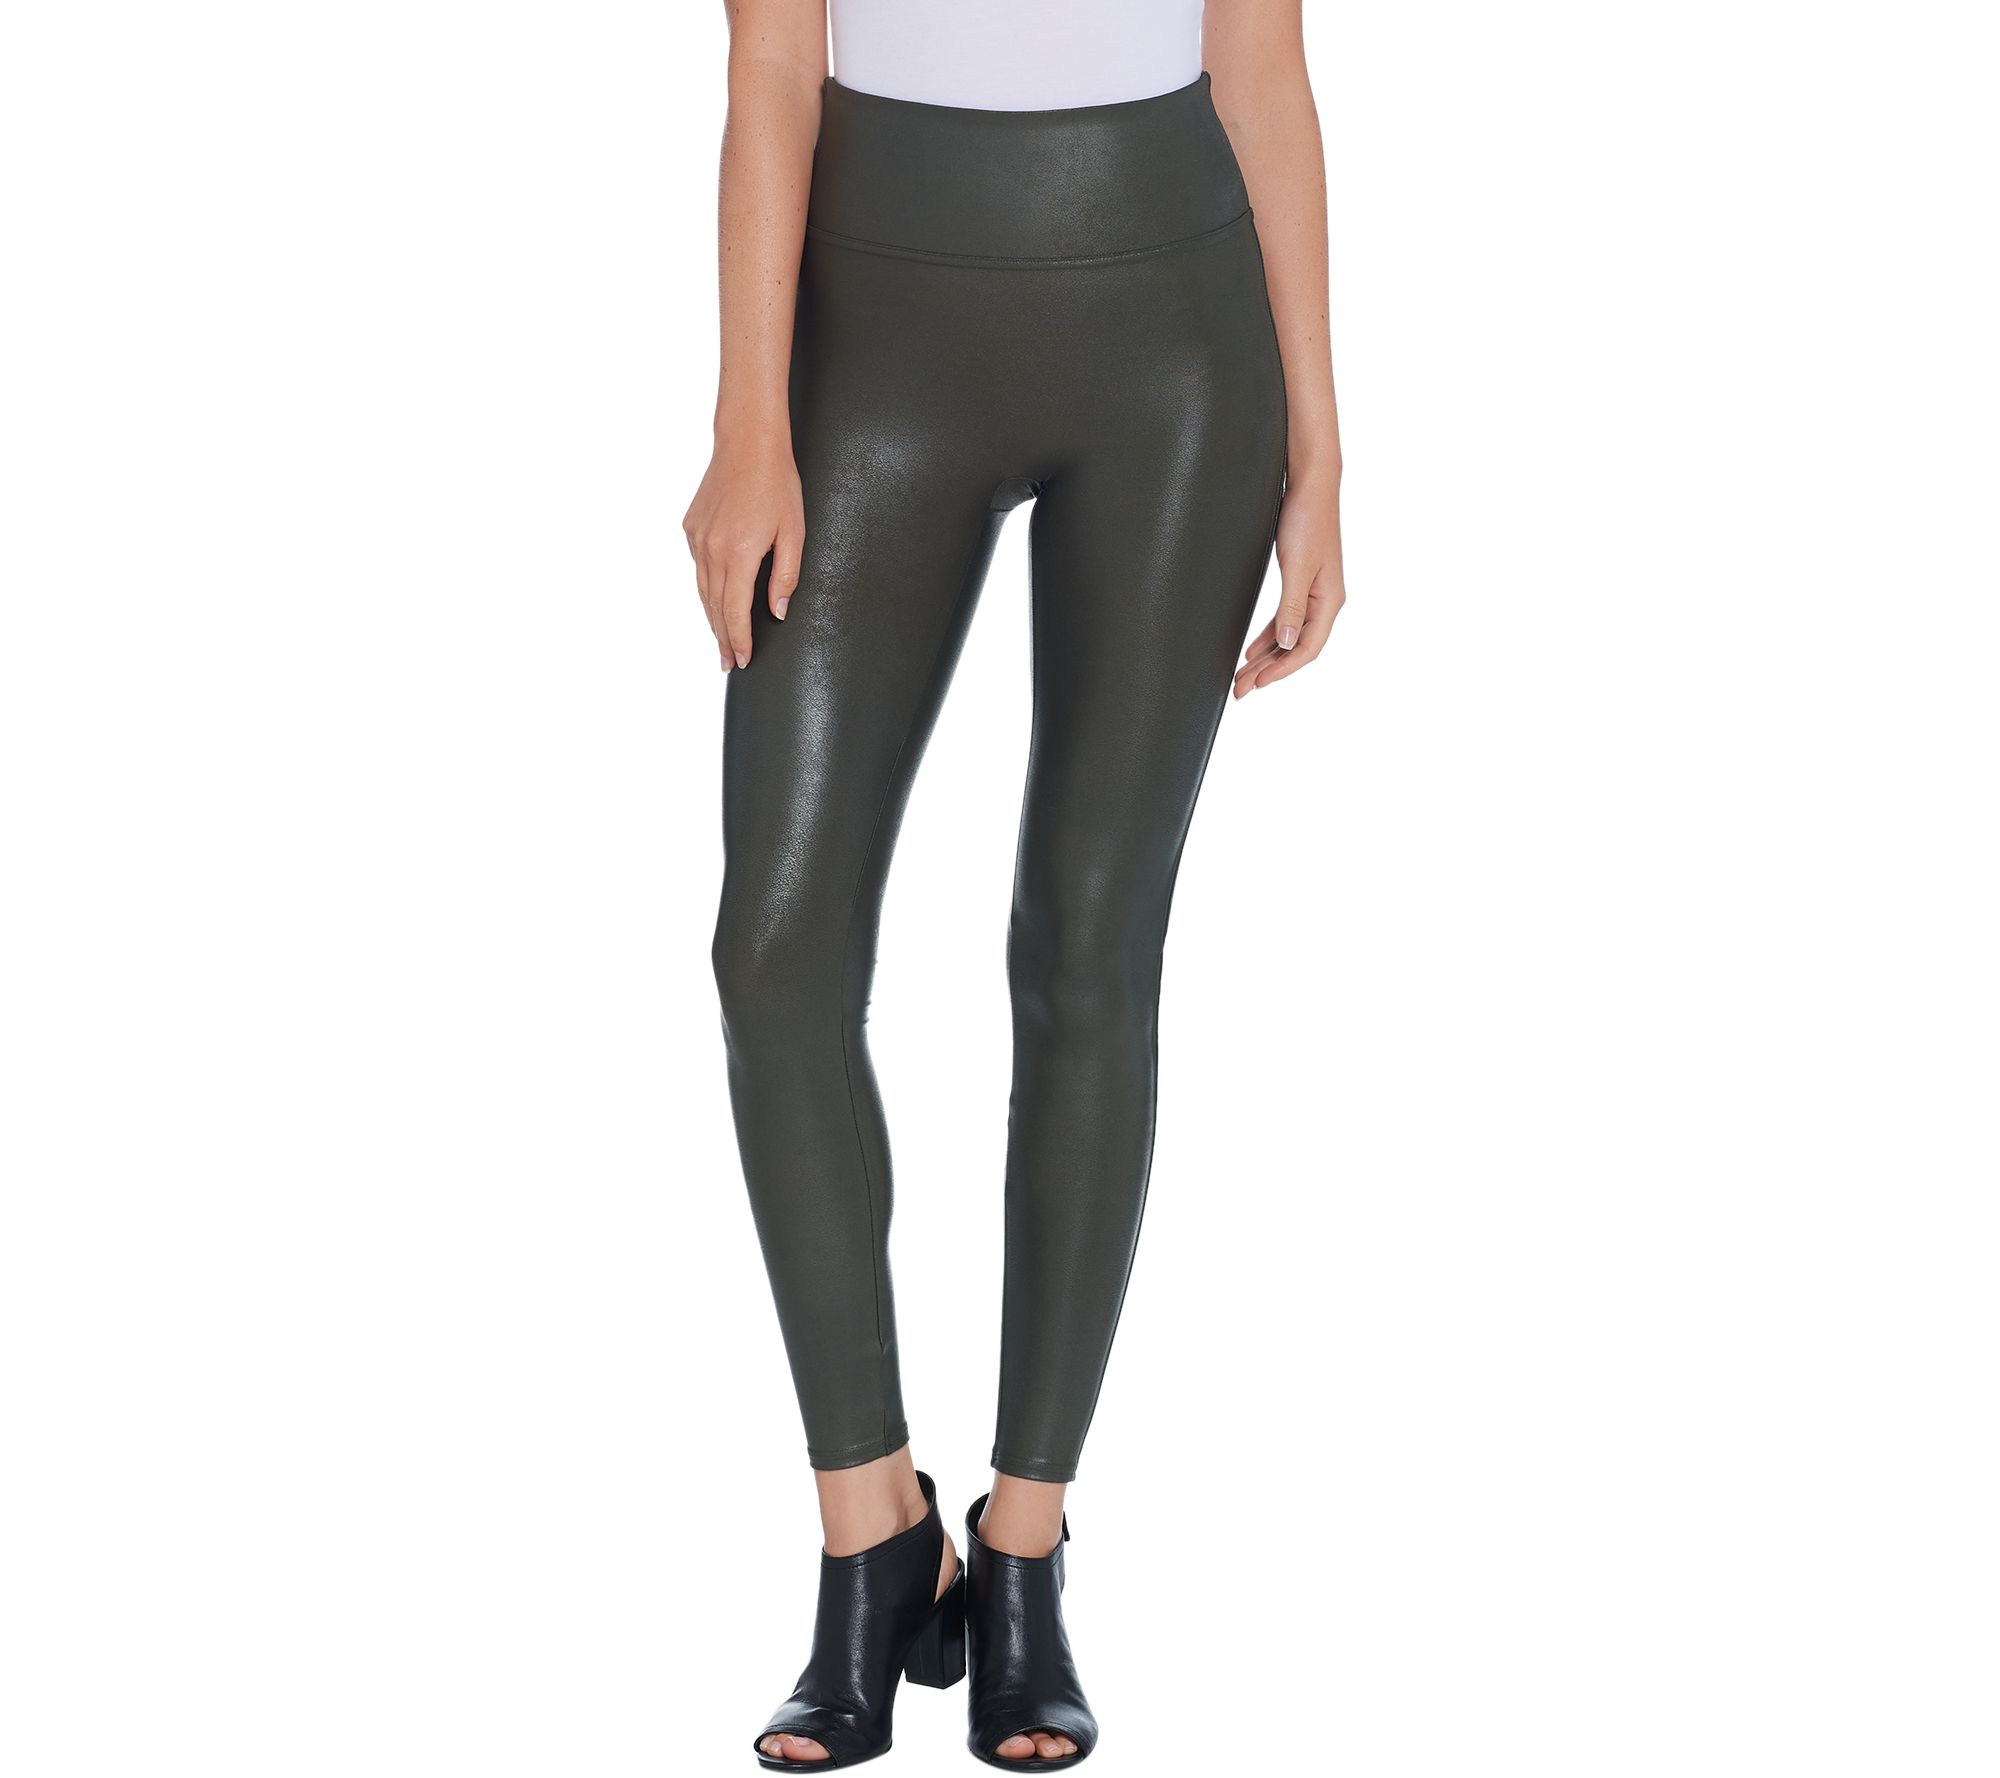 a77c1a3aab9c2 Spanx Faux Leather Leggings - Page 1 — QVC.com